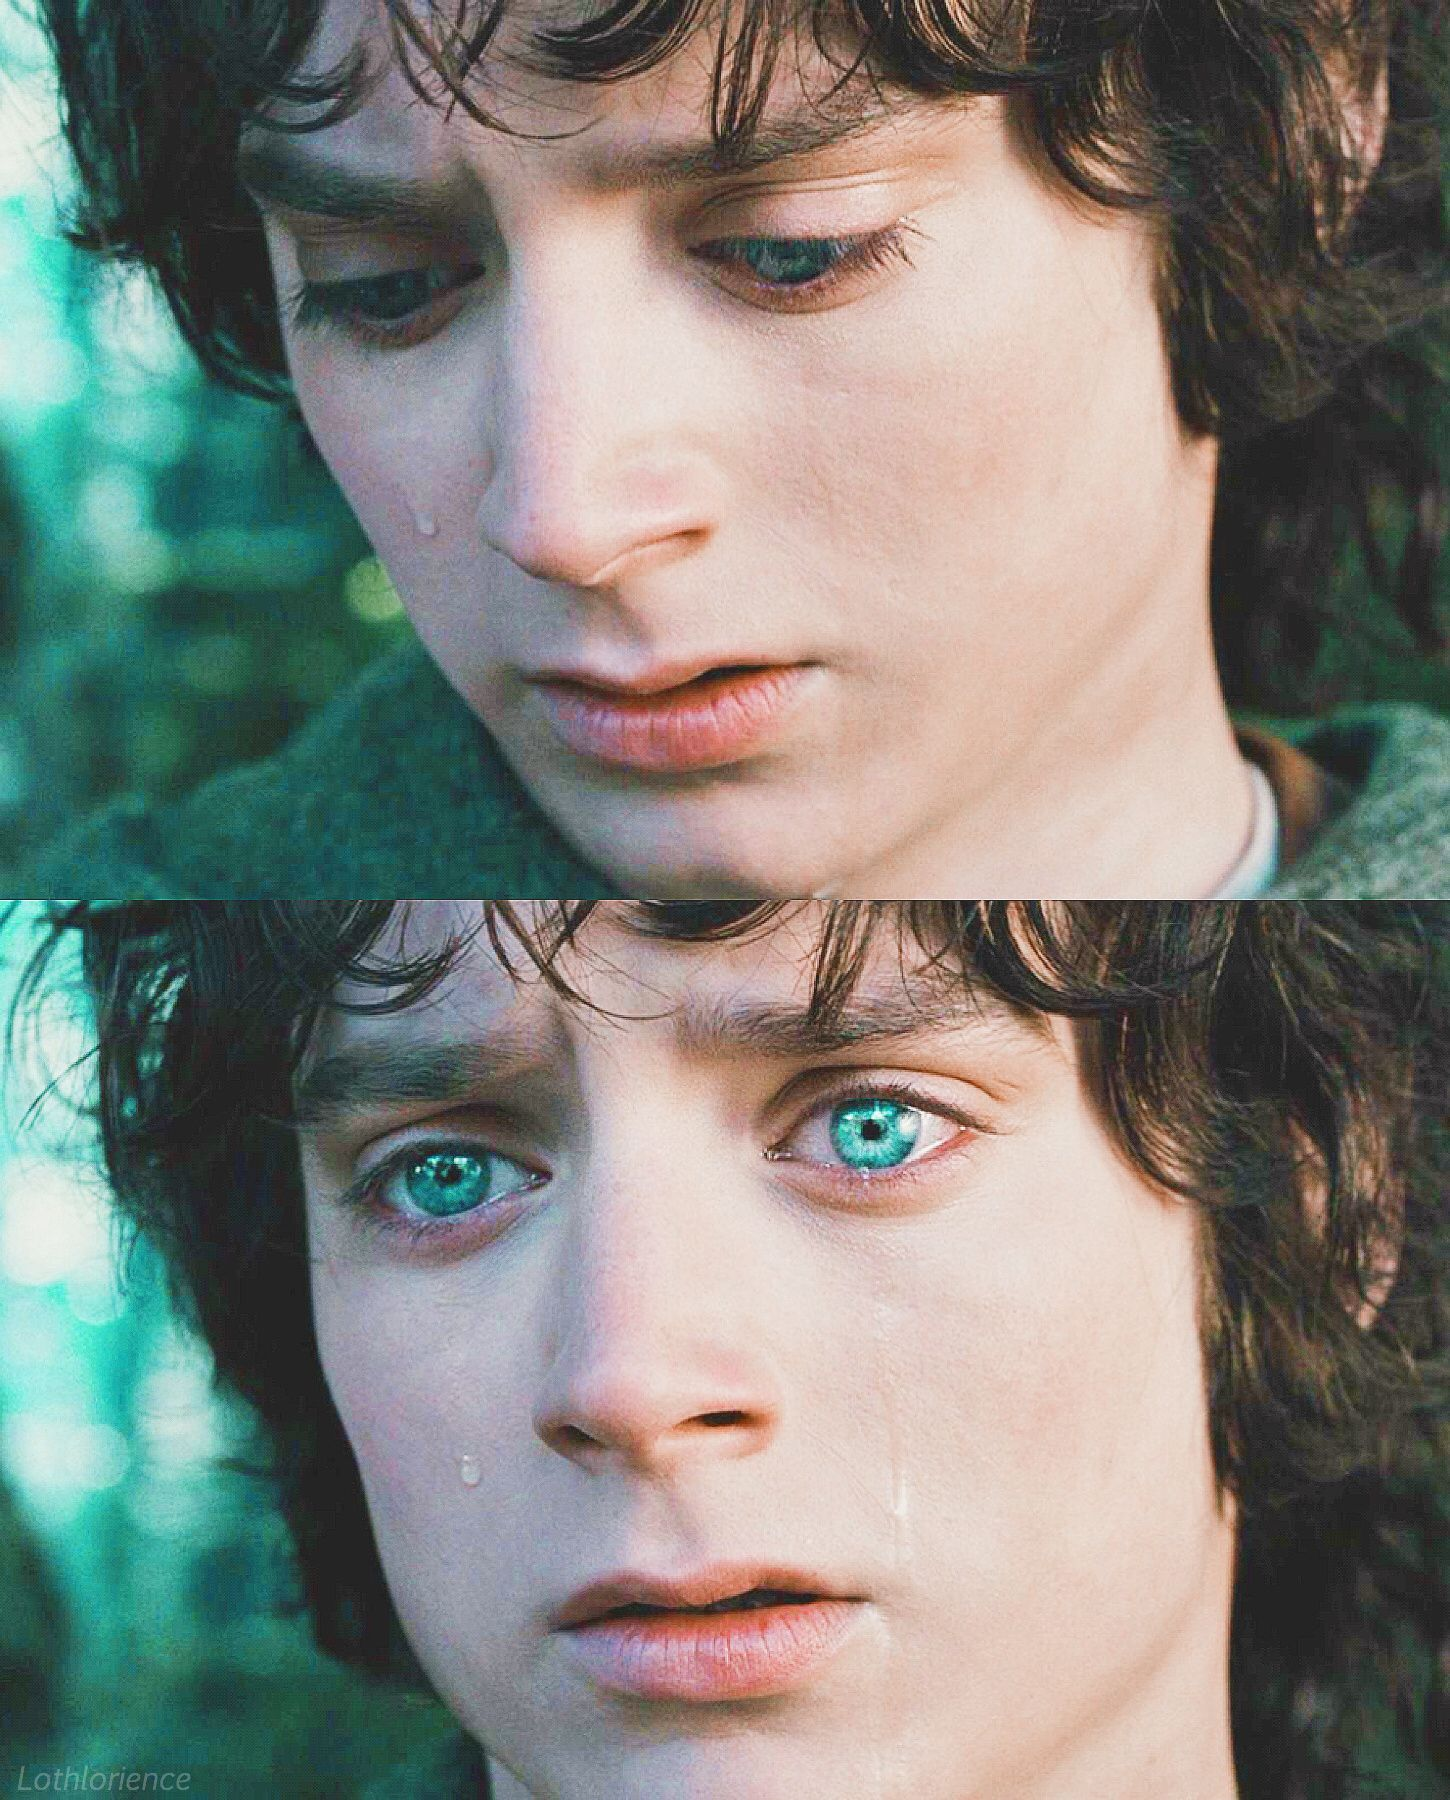 His Eyes People With Dark Hair And Blue Eyes Are So Rare Compared To The Typical Blonde And Blue Eye Frodo Lord Of The Rings The Hobbit